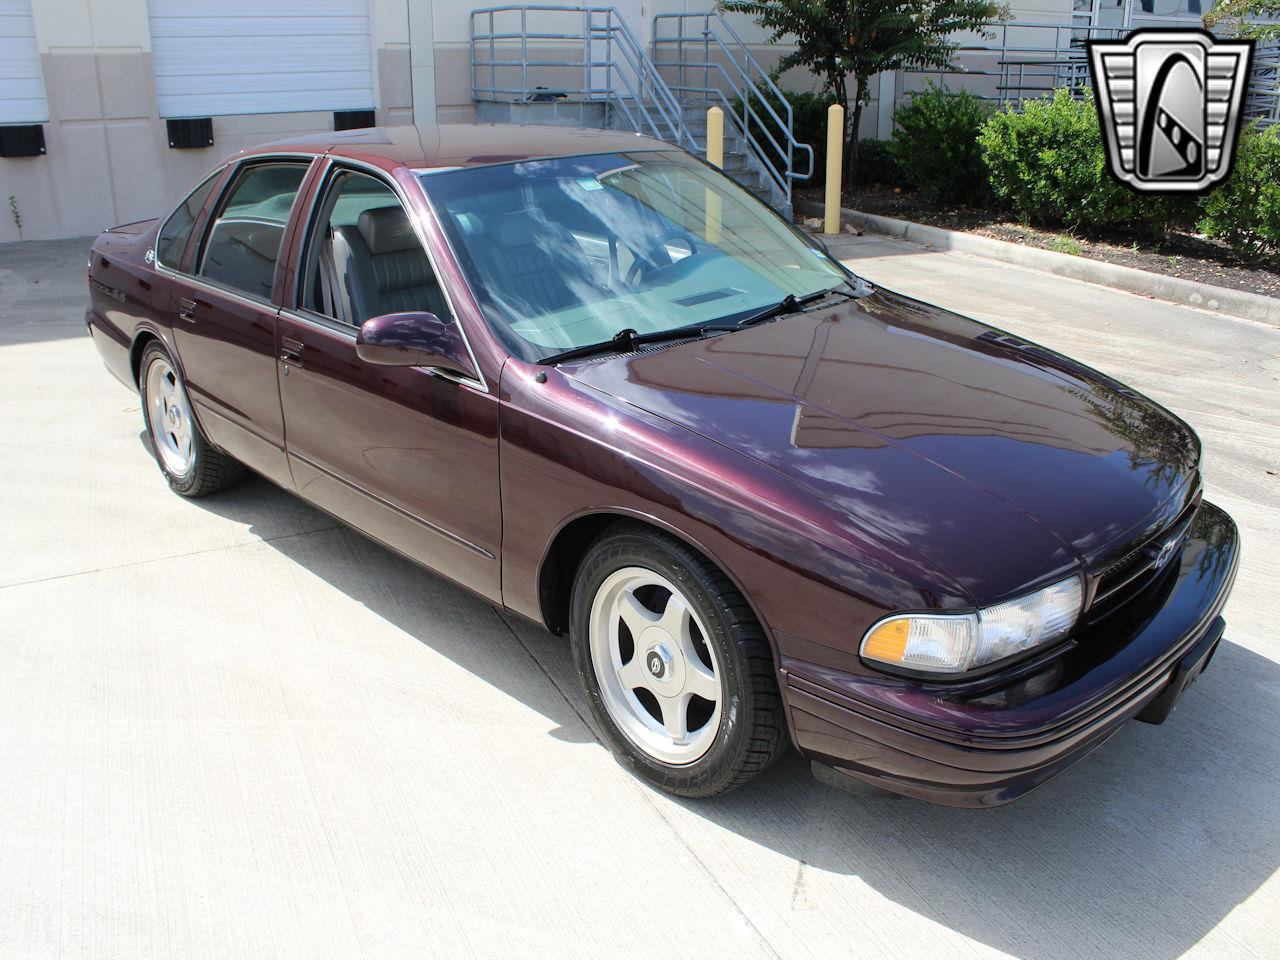 1995 Chevrolet Impala (CC-1384493) for sale in O'Fallon, Illinois